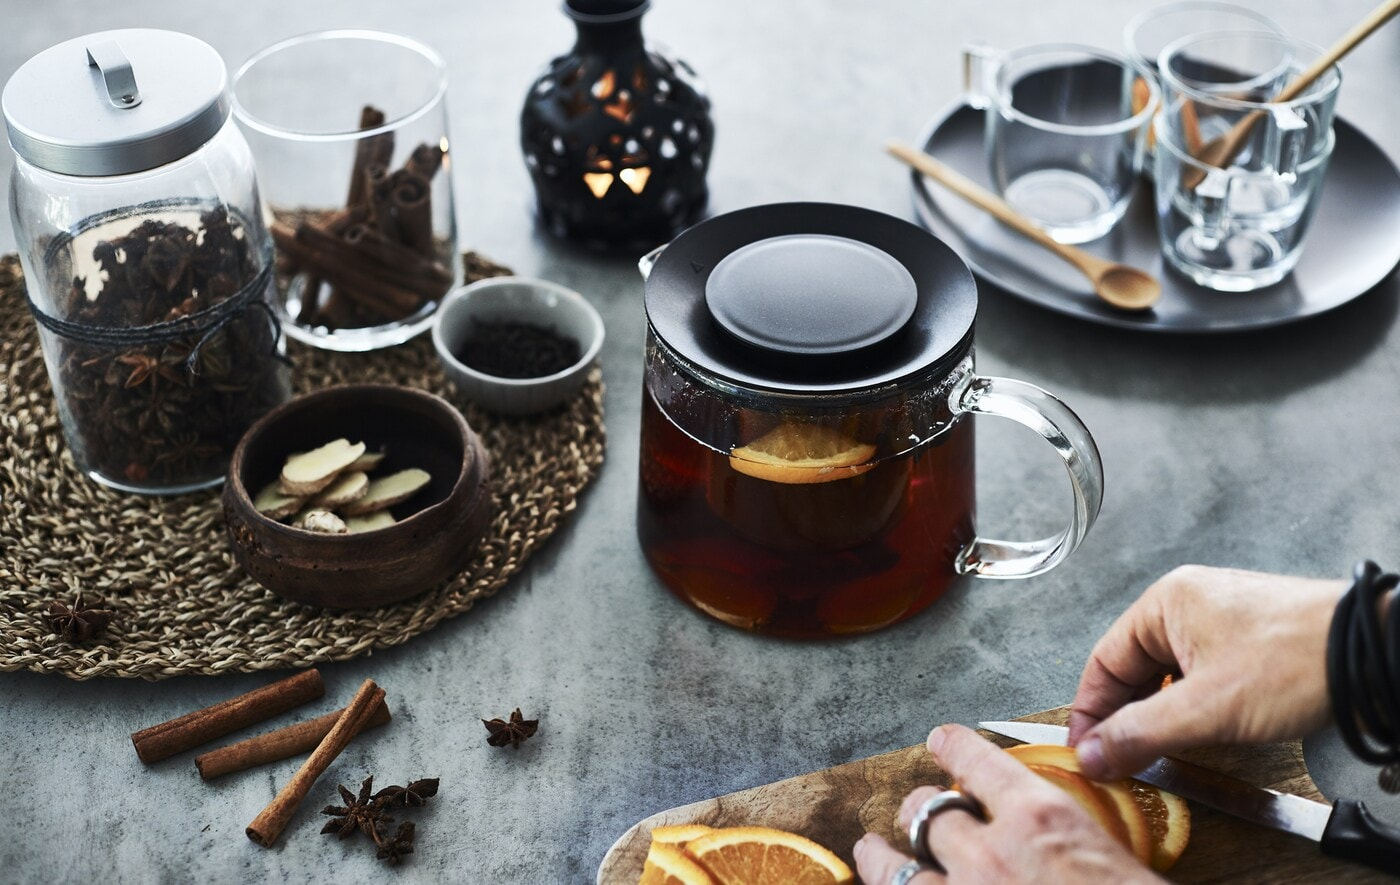 A glass pot of tea and jars of seasonal spices and fruits, on a worktop.